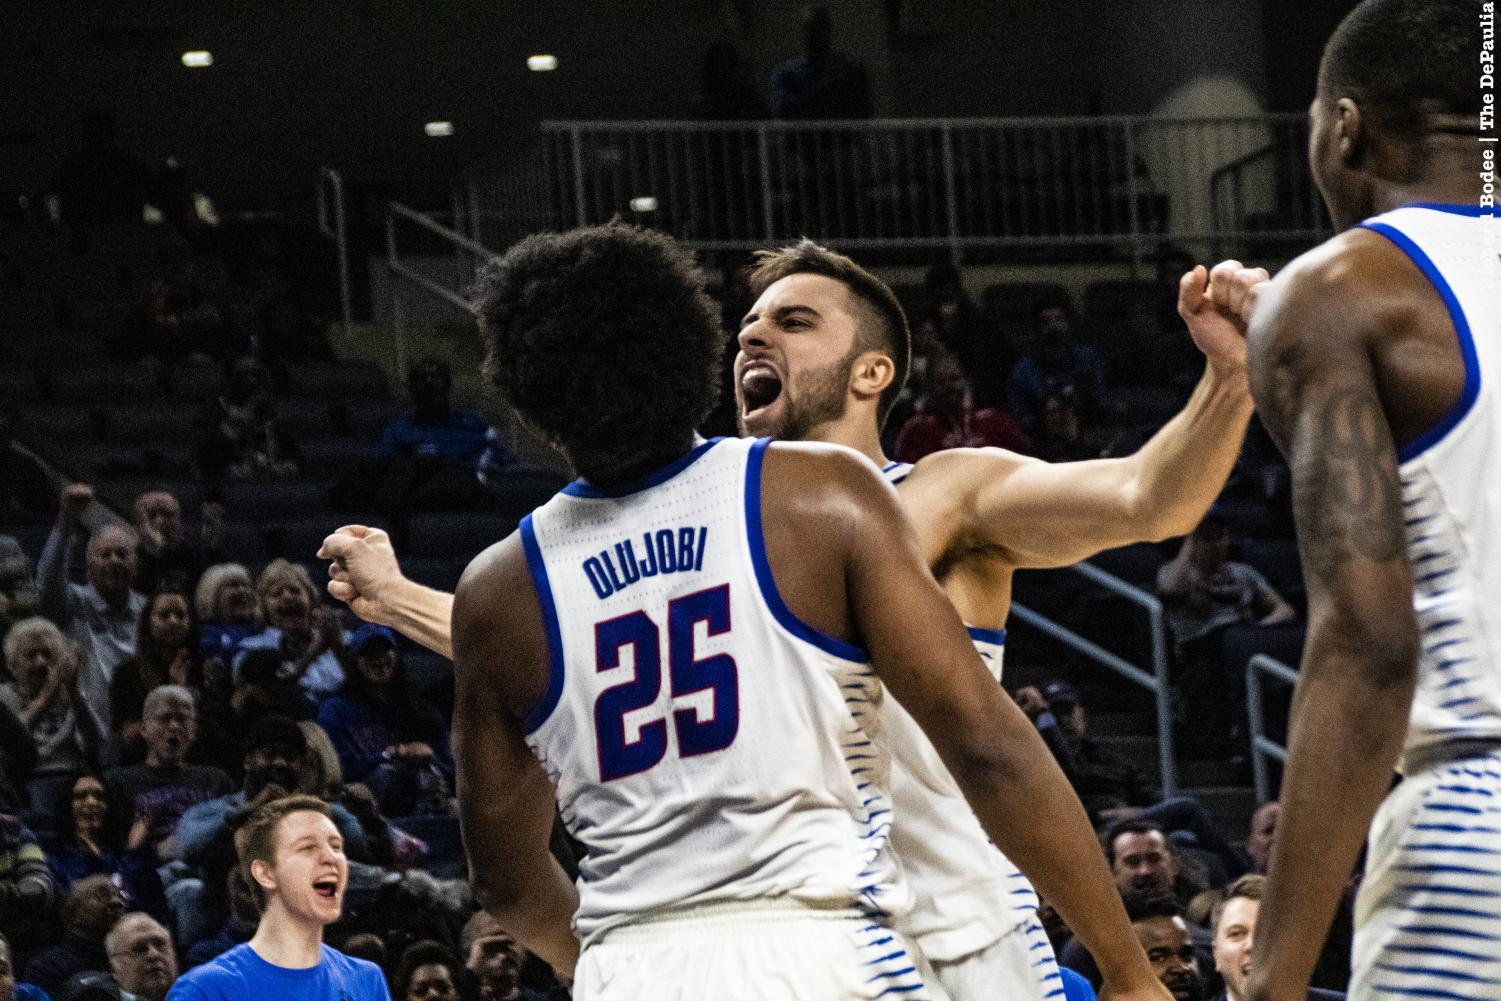 Seniors Max Strus and Femi Olujobi combined for 66 points in the Blue Demons 92-83 victory against the St. John's Red Storm Sunday at Wintrust Arena. Richard Bodee I The DePaulia